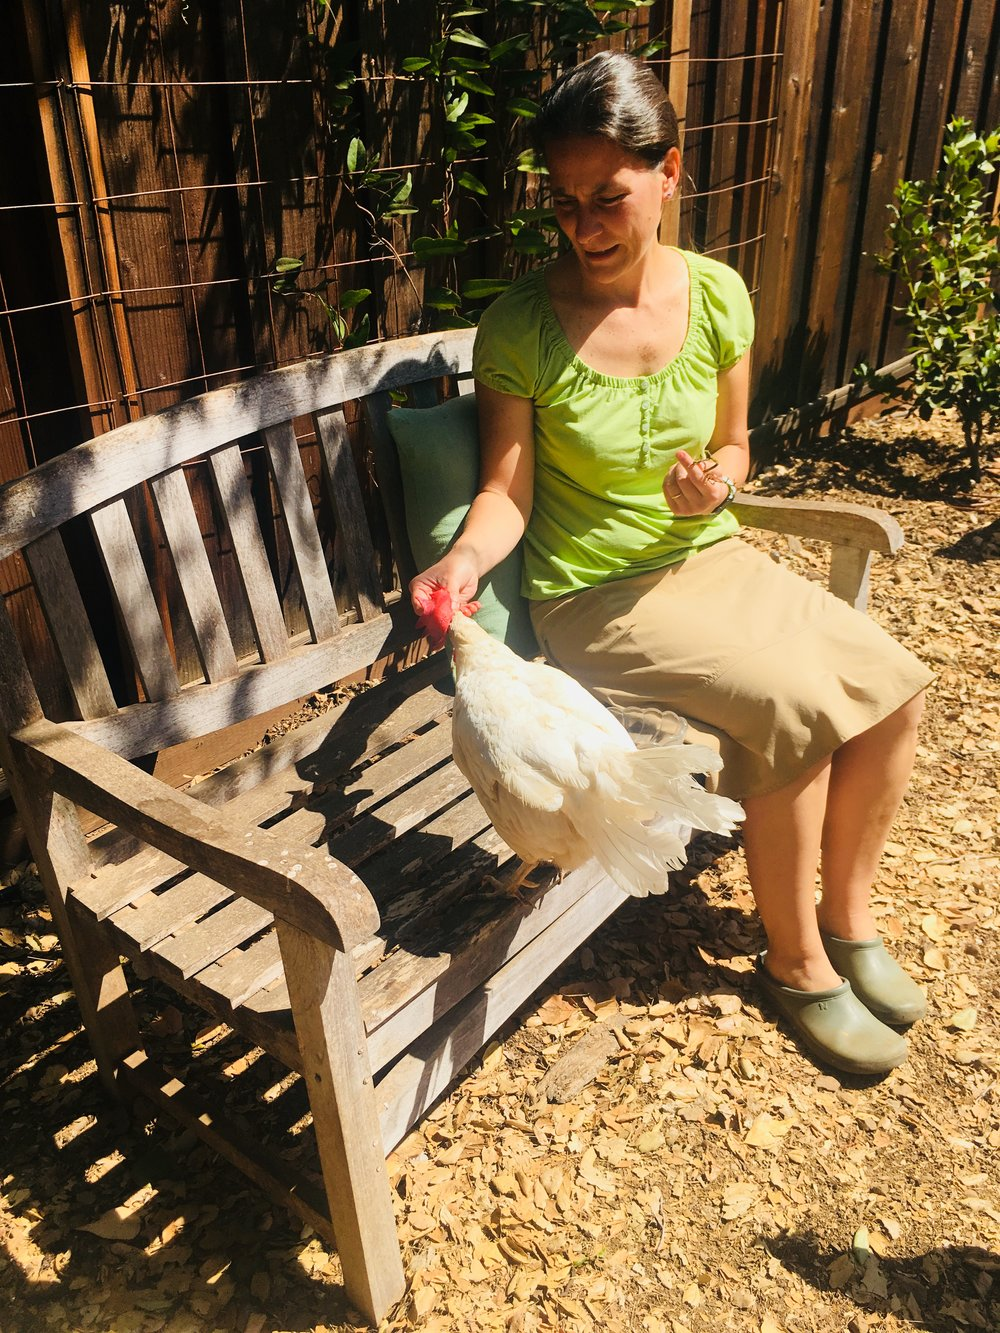 Luna is one of the friendliest chickens living at Isabelle Cnudde's miscrosanctuary.